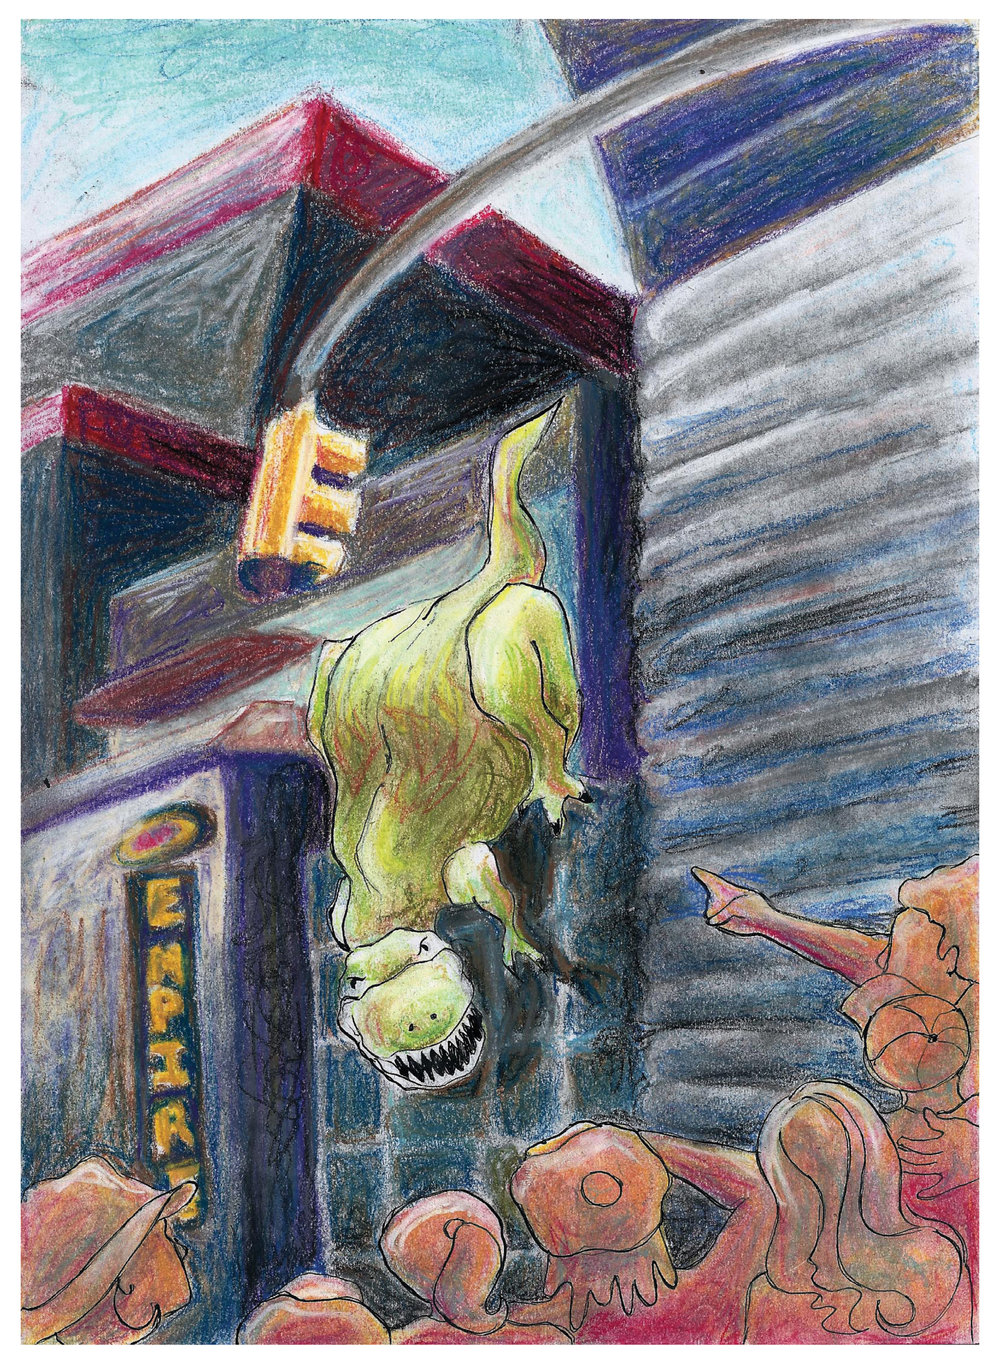 3D Cinema Dinosaur Project (concept development visuals) pastels